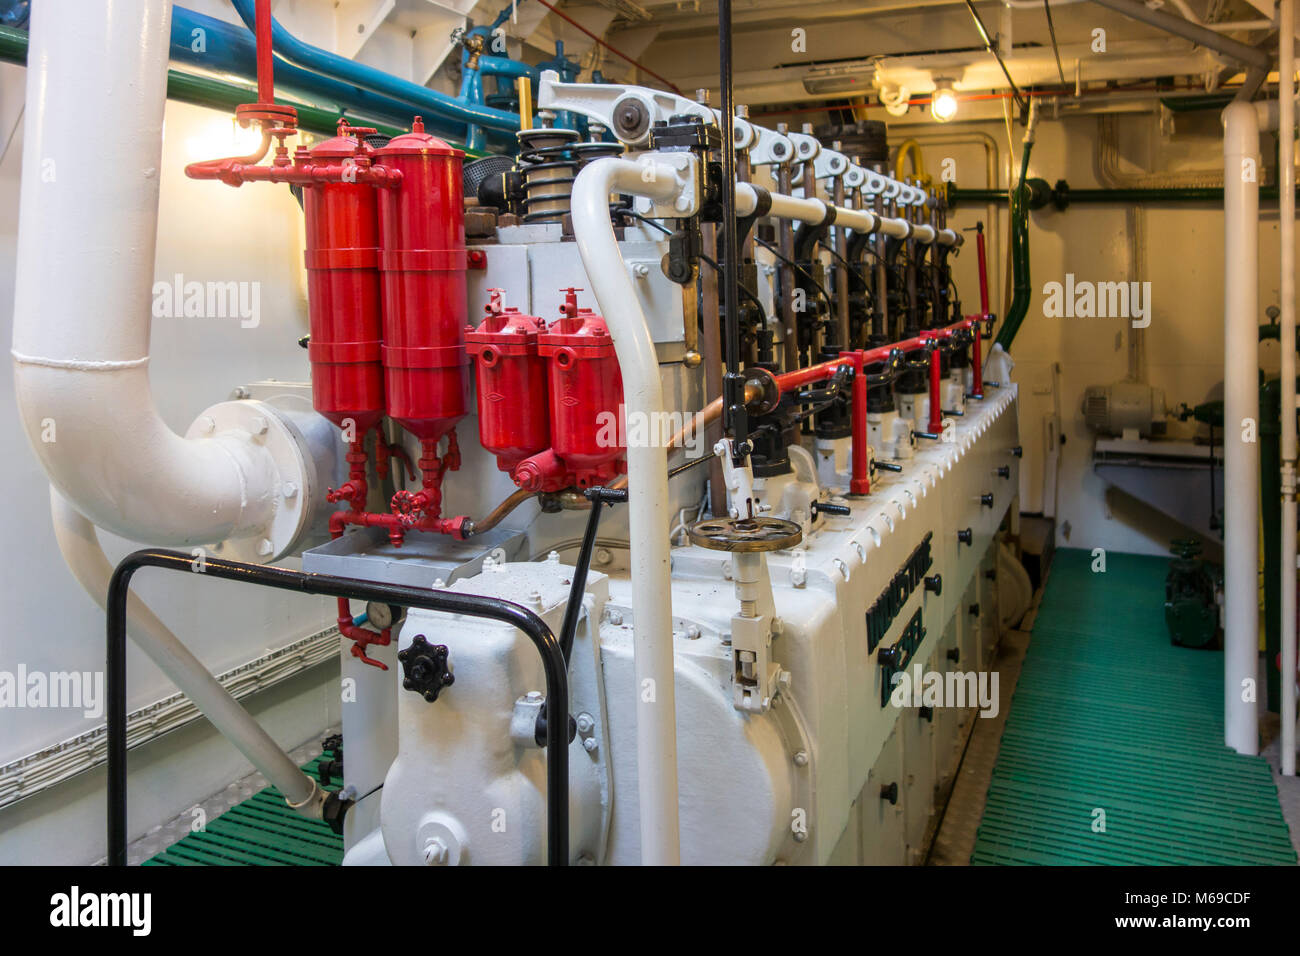 6-cylinder 510 hp engine in engine room of the last Iceland trawler Amandine, renovated fishing boat now serves - Stock Image